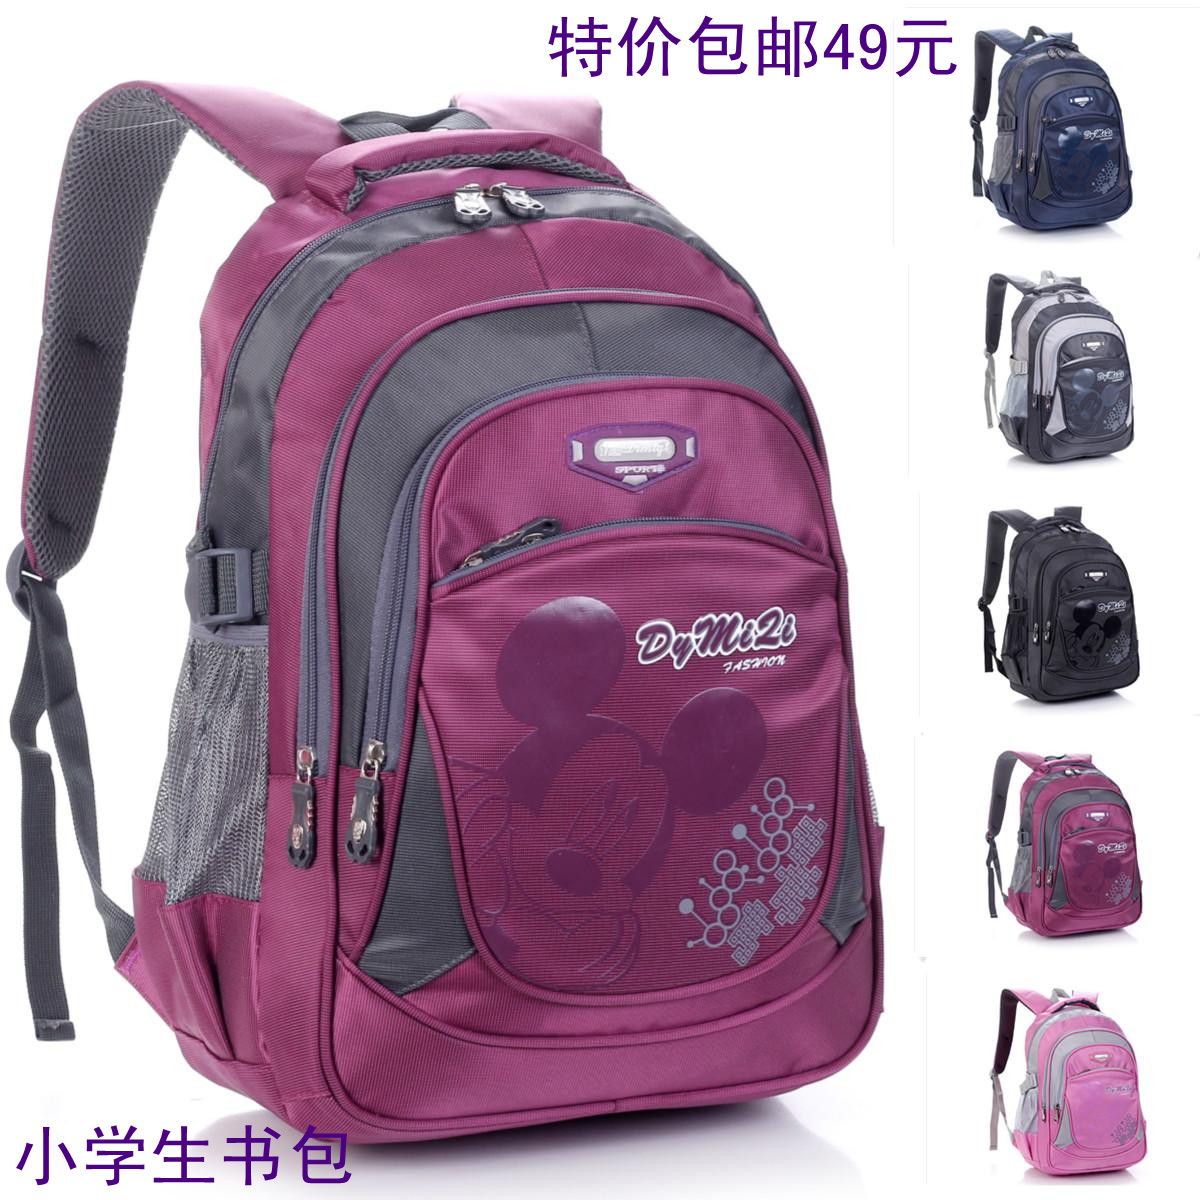 Authentic email! Schoolchildren boys and children of lightening schoolbag school bags shoulder bags lightweight waterproof bags